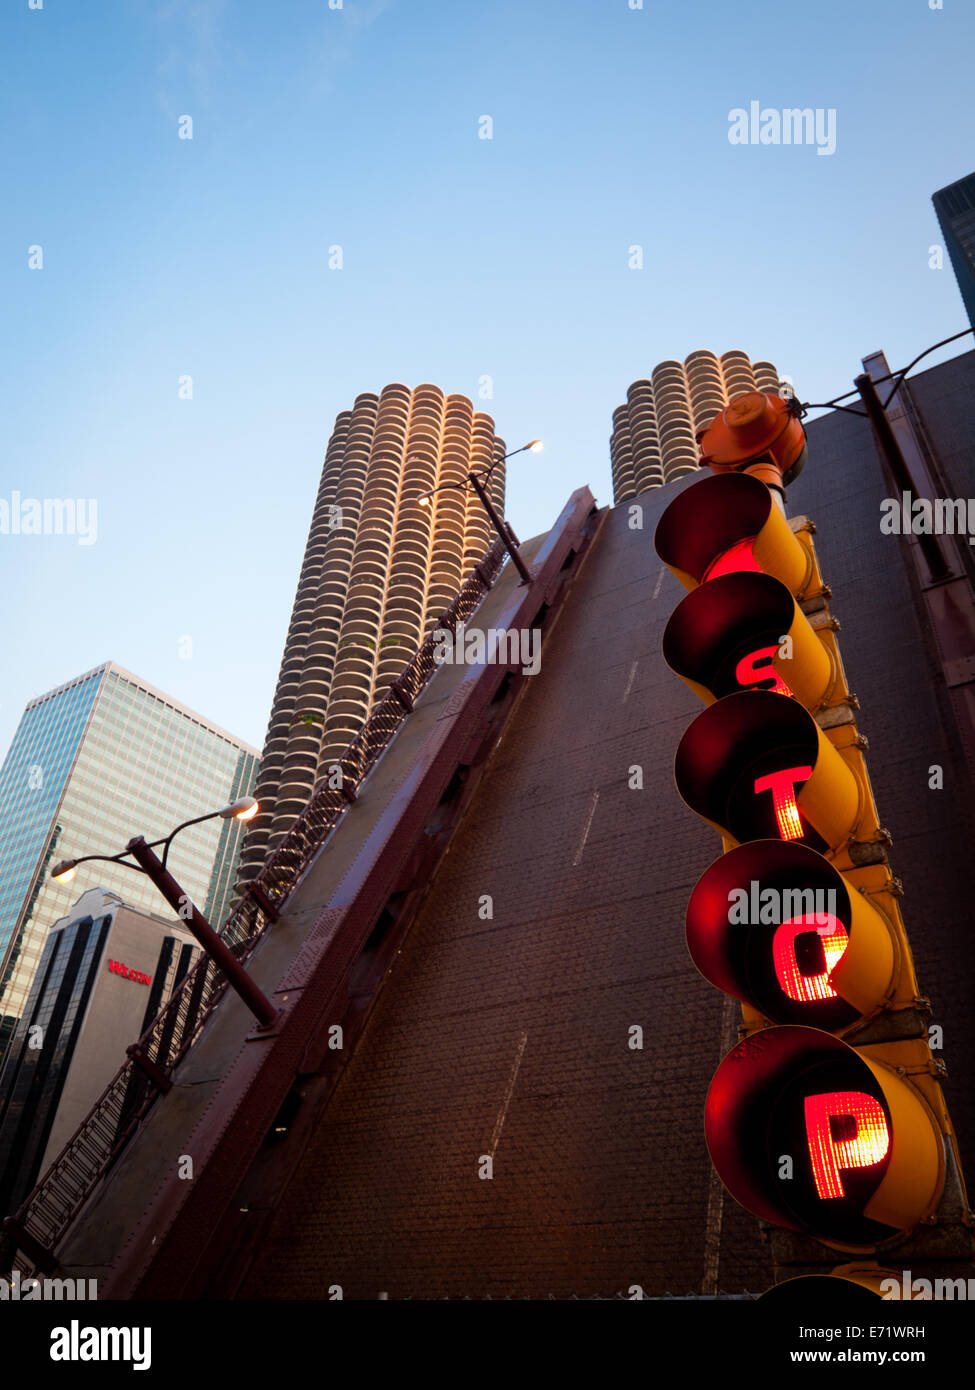 A view of a red stoplight in front of the raised State Street Drawbridge in Chicago, Illinois. - Stock Image